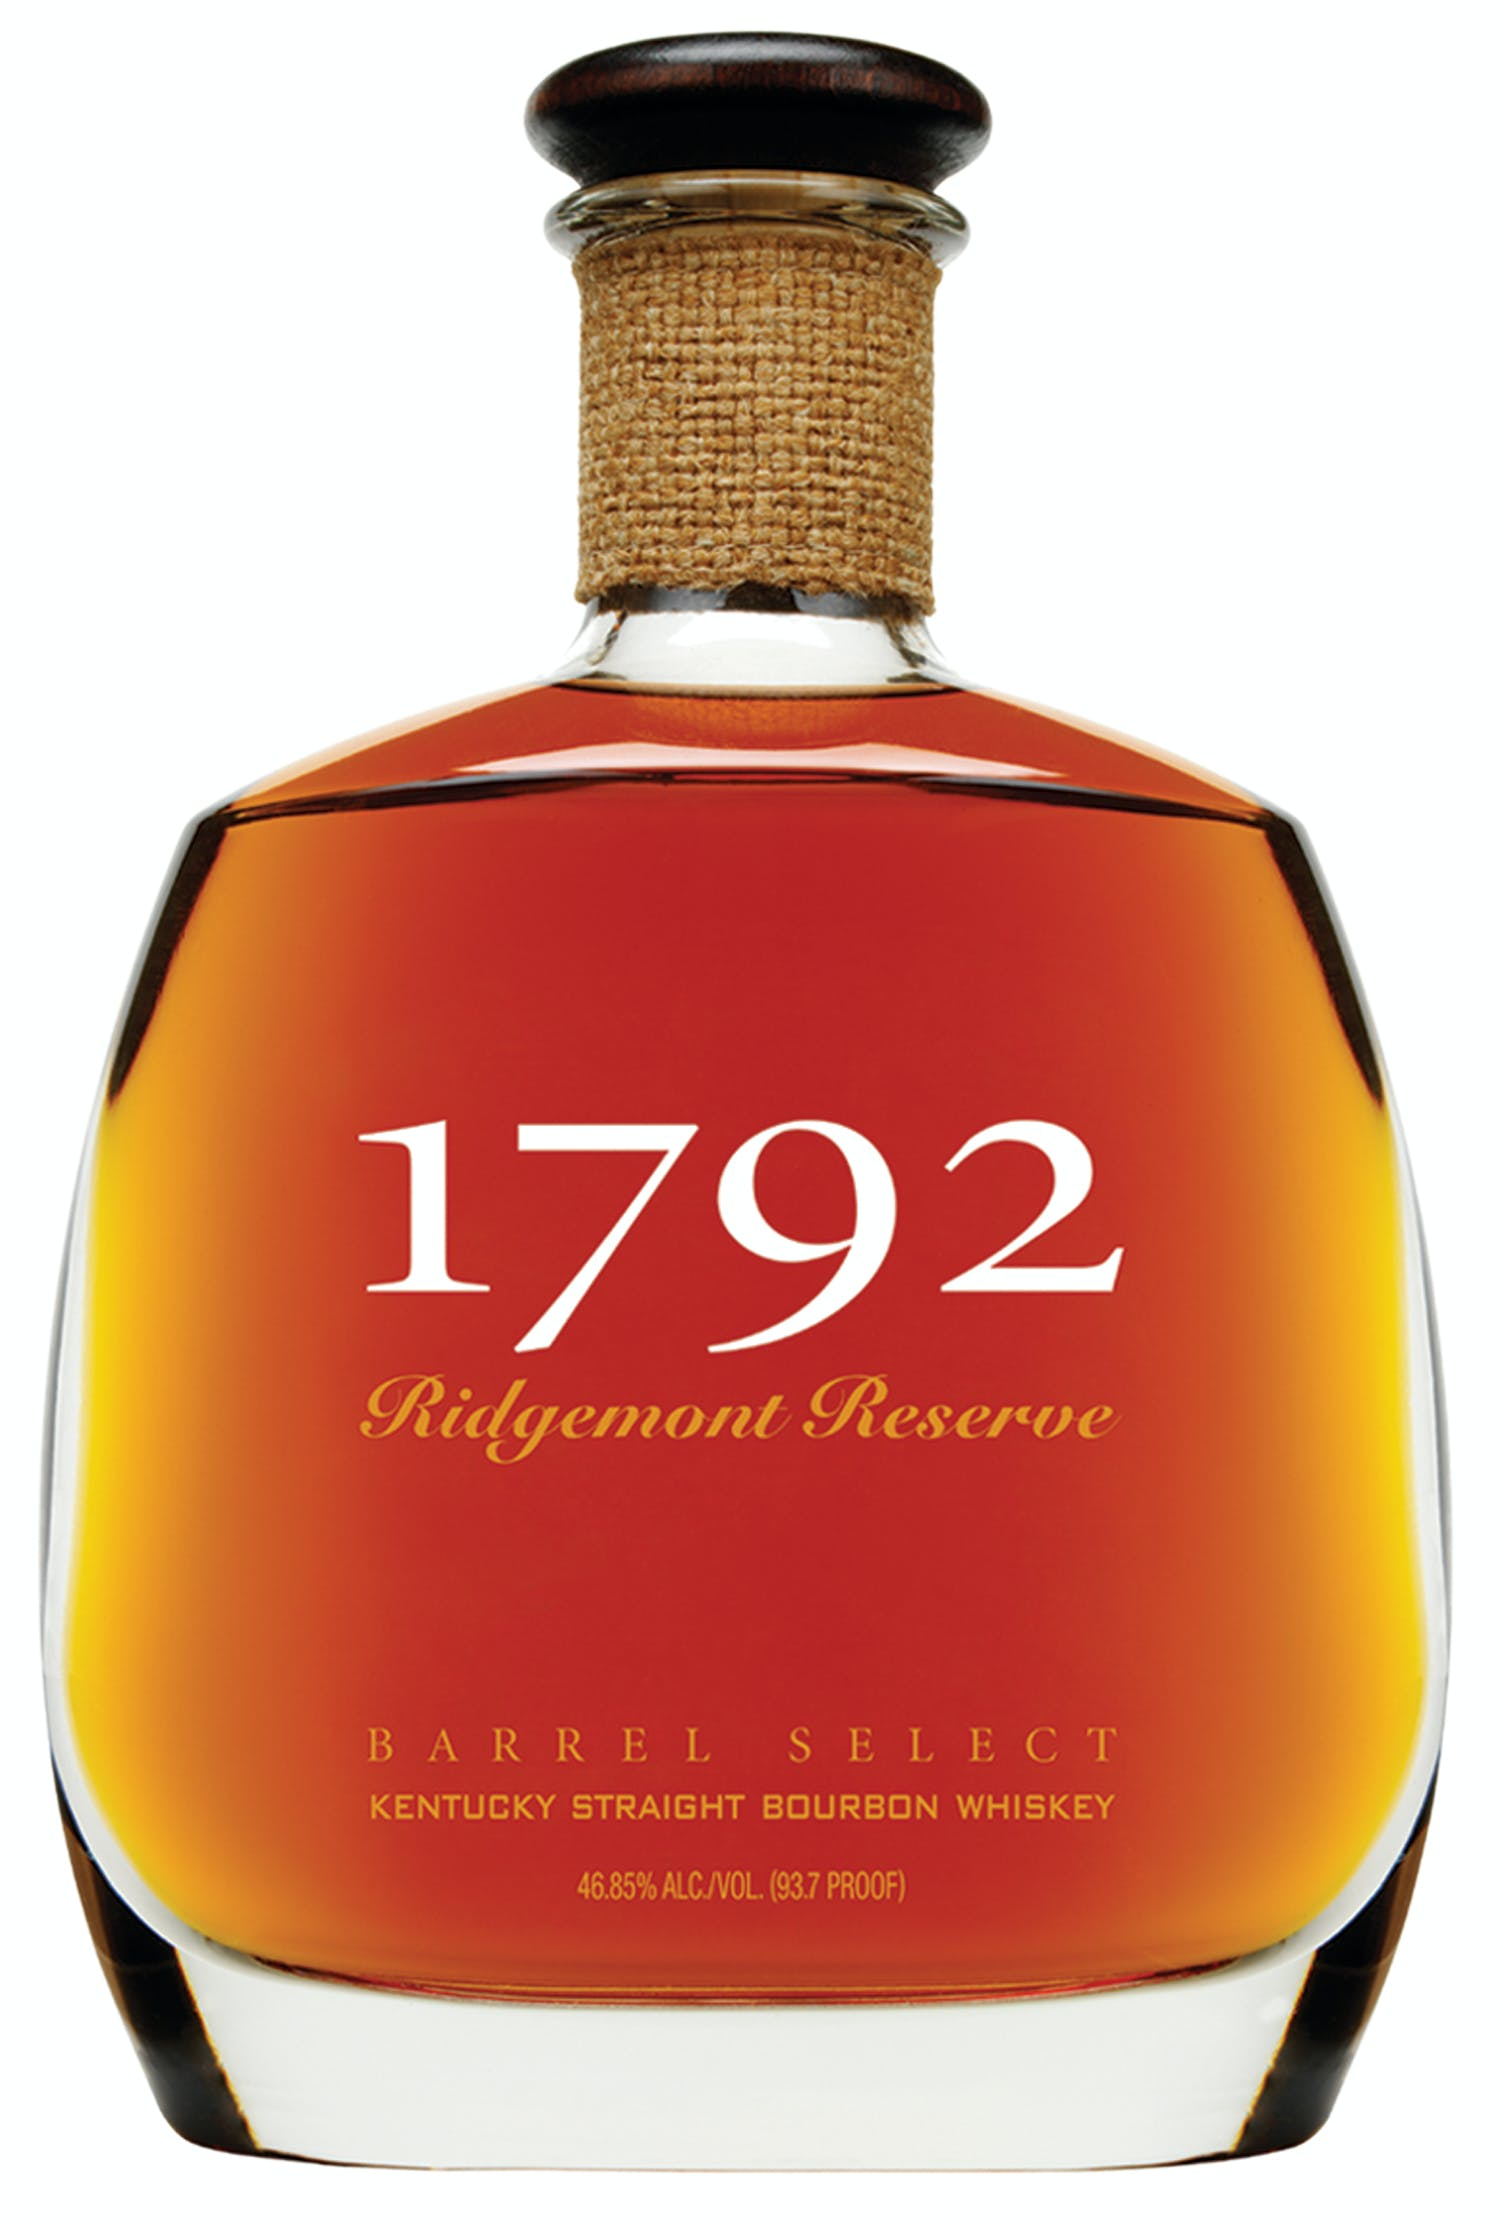 1792 Ridgemont Reserve Kentucky Straight Bourbon Whiskey